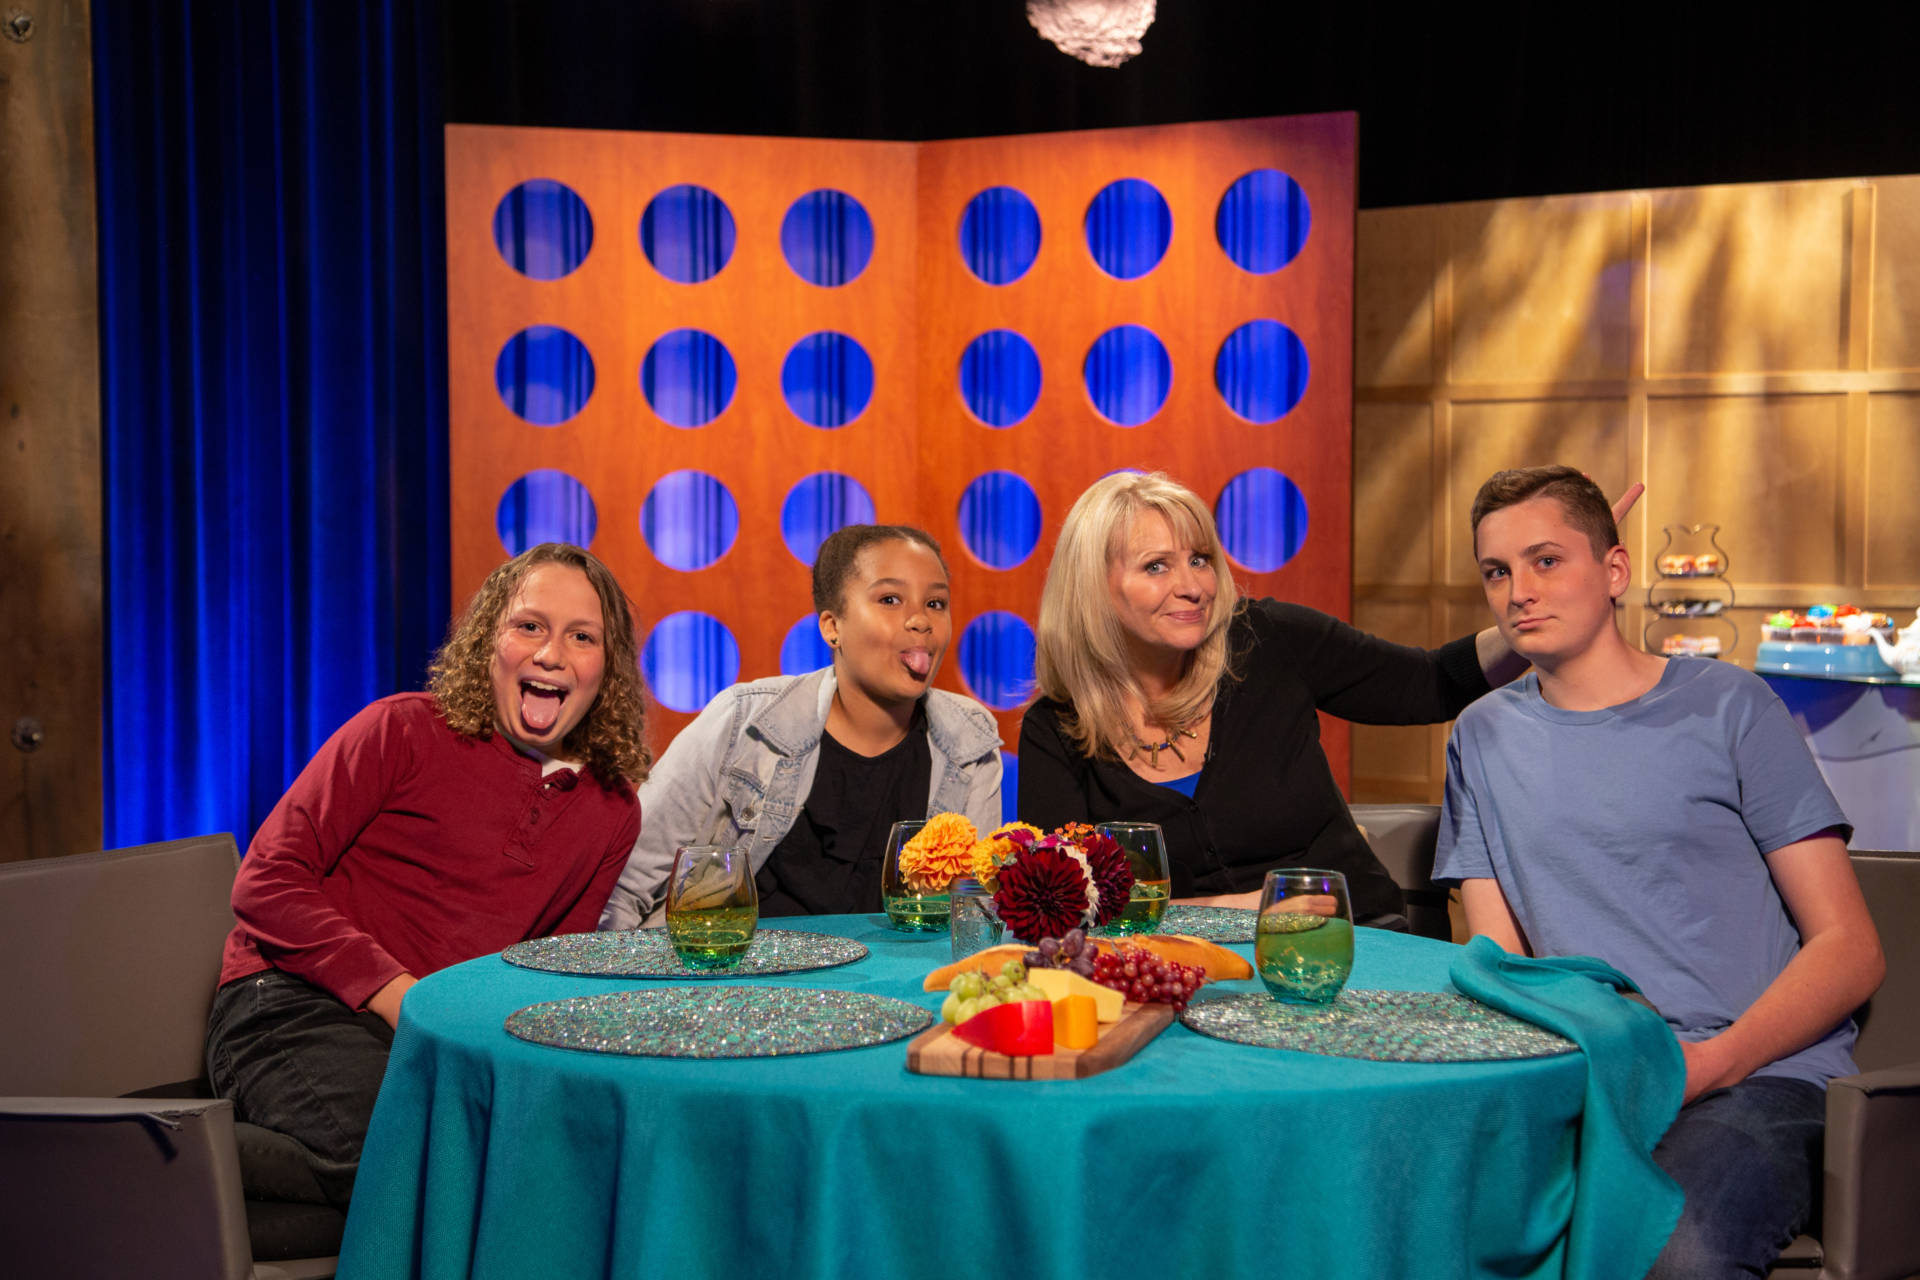 Host Leslie Sbrocco and guests on the set of season 13 episode 24.